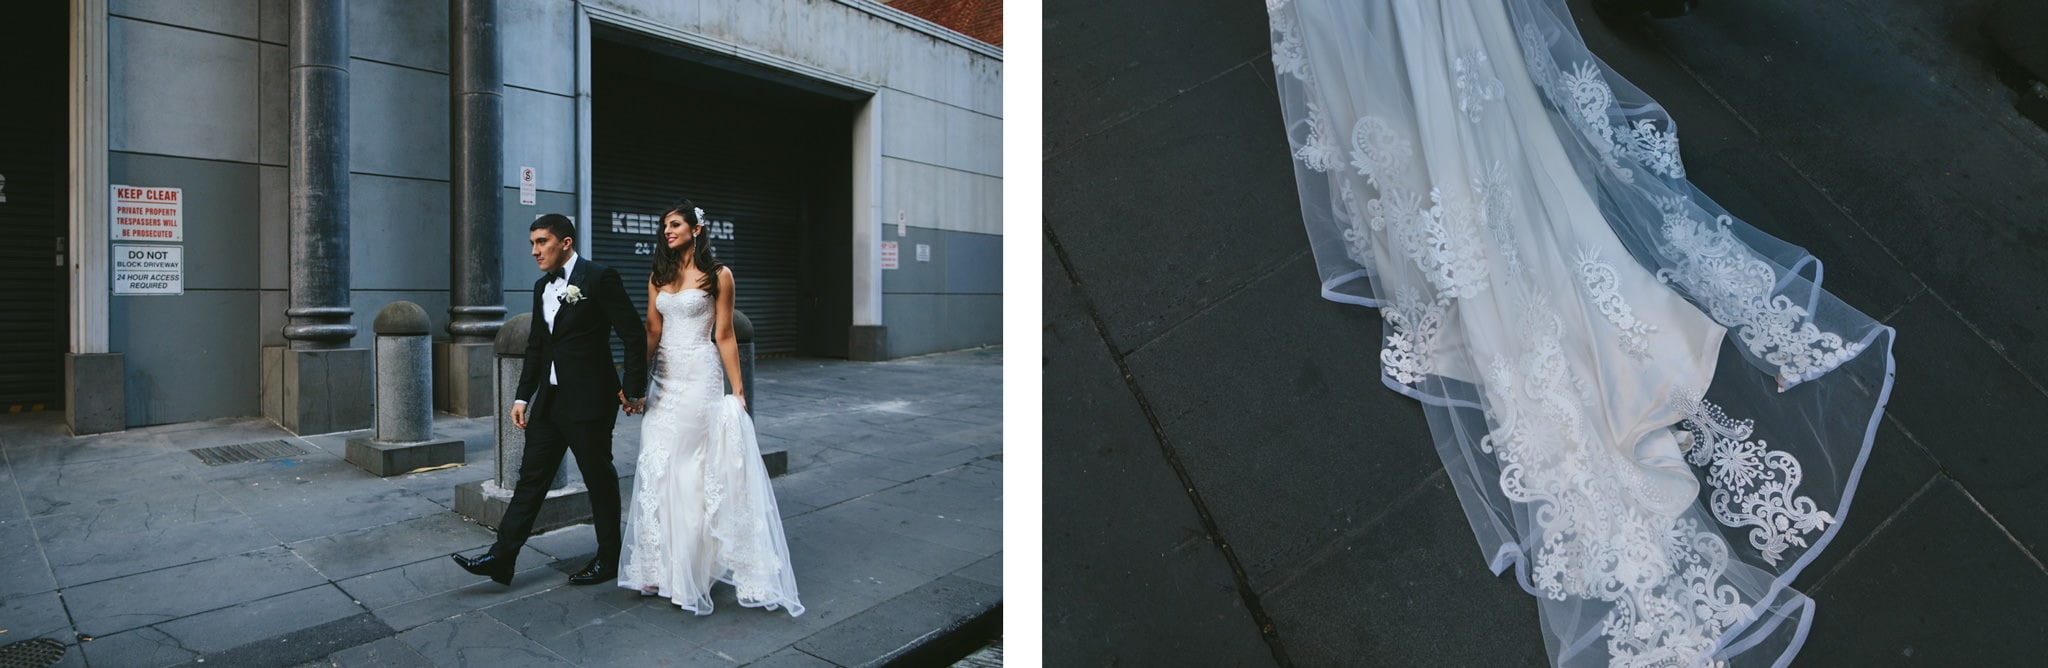 urban city wedding photography in Melbourne - rad photos - cool shots